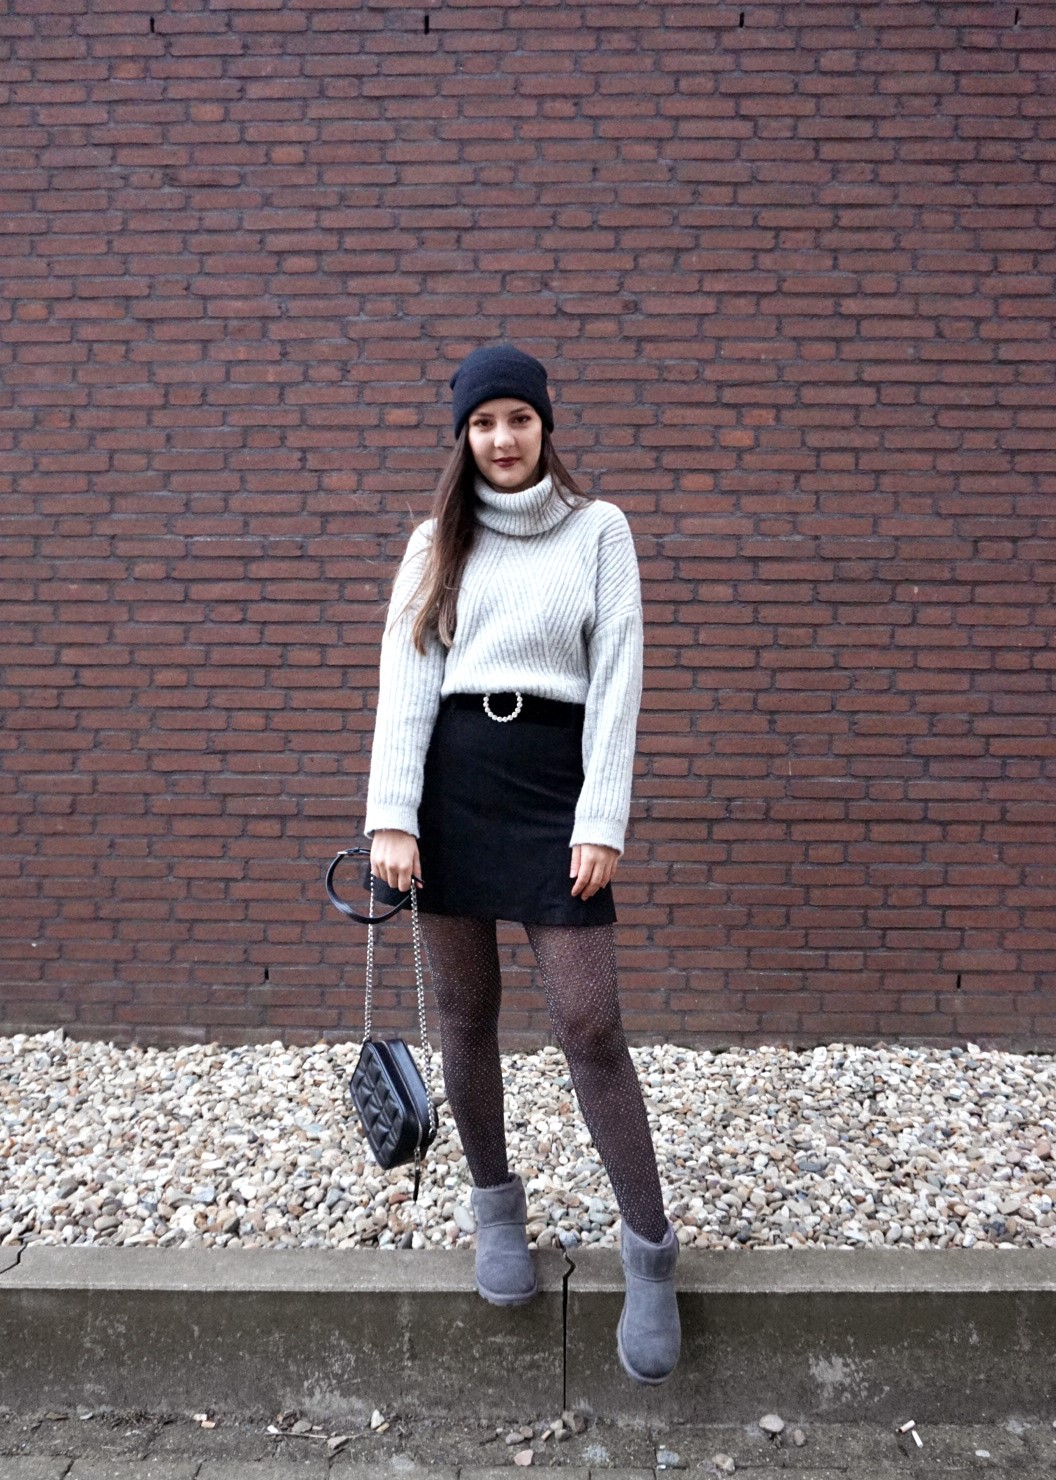 ugg boots outfit idea